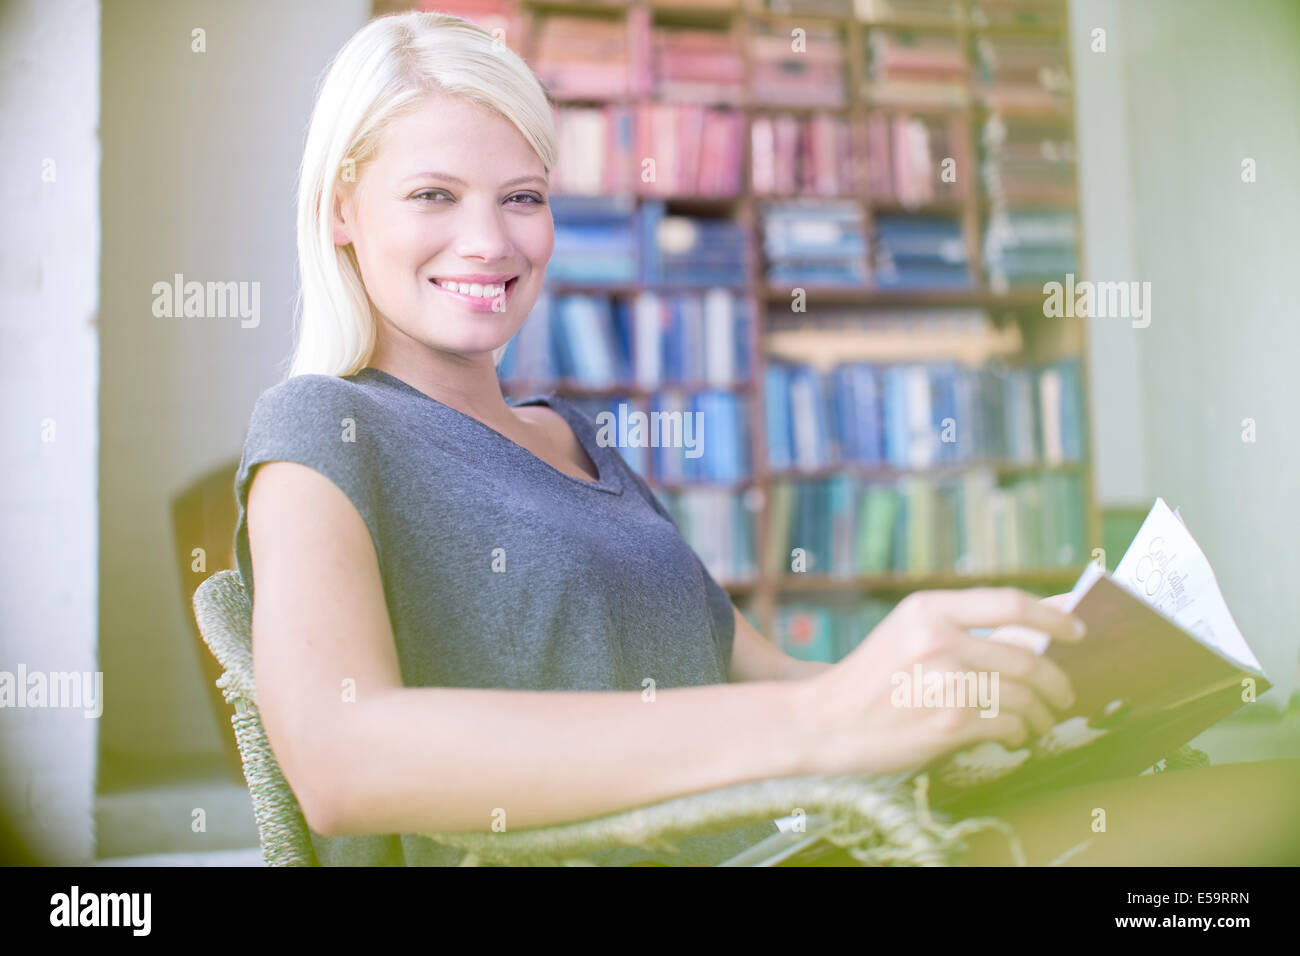 Woman reading in armchair - Stock Image